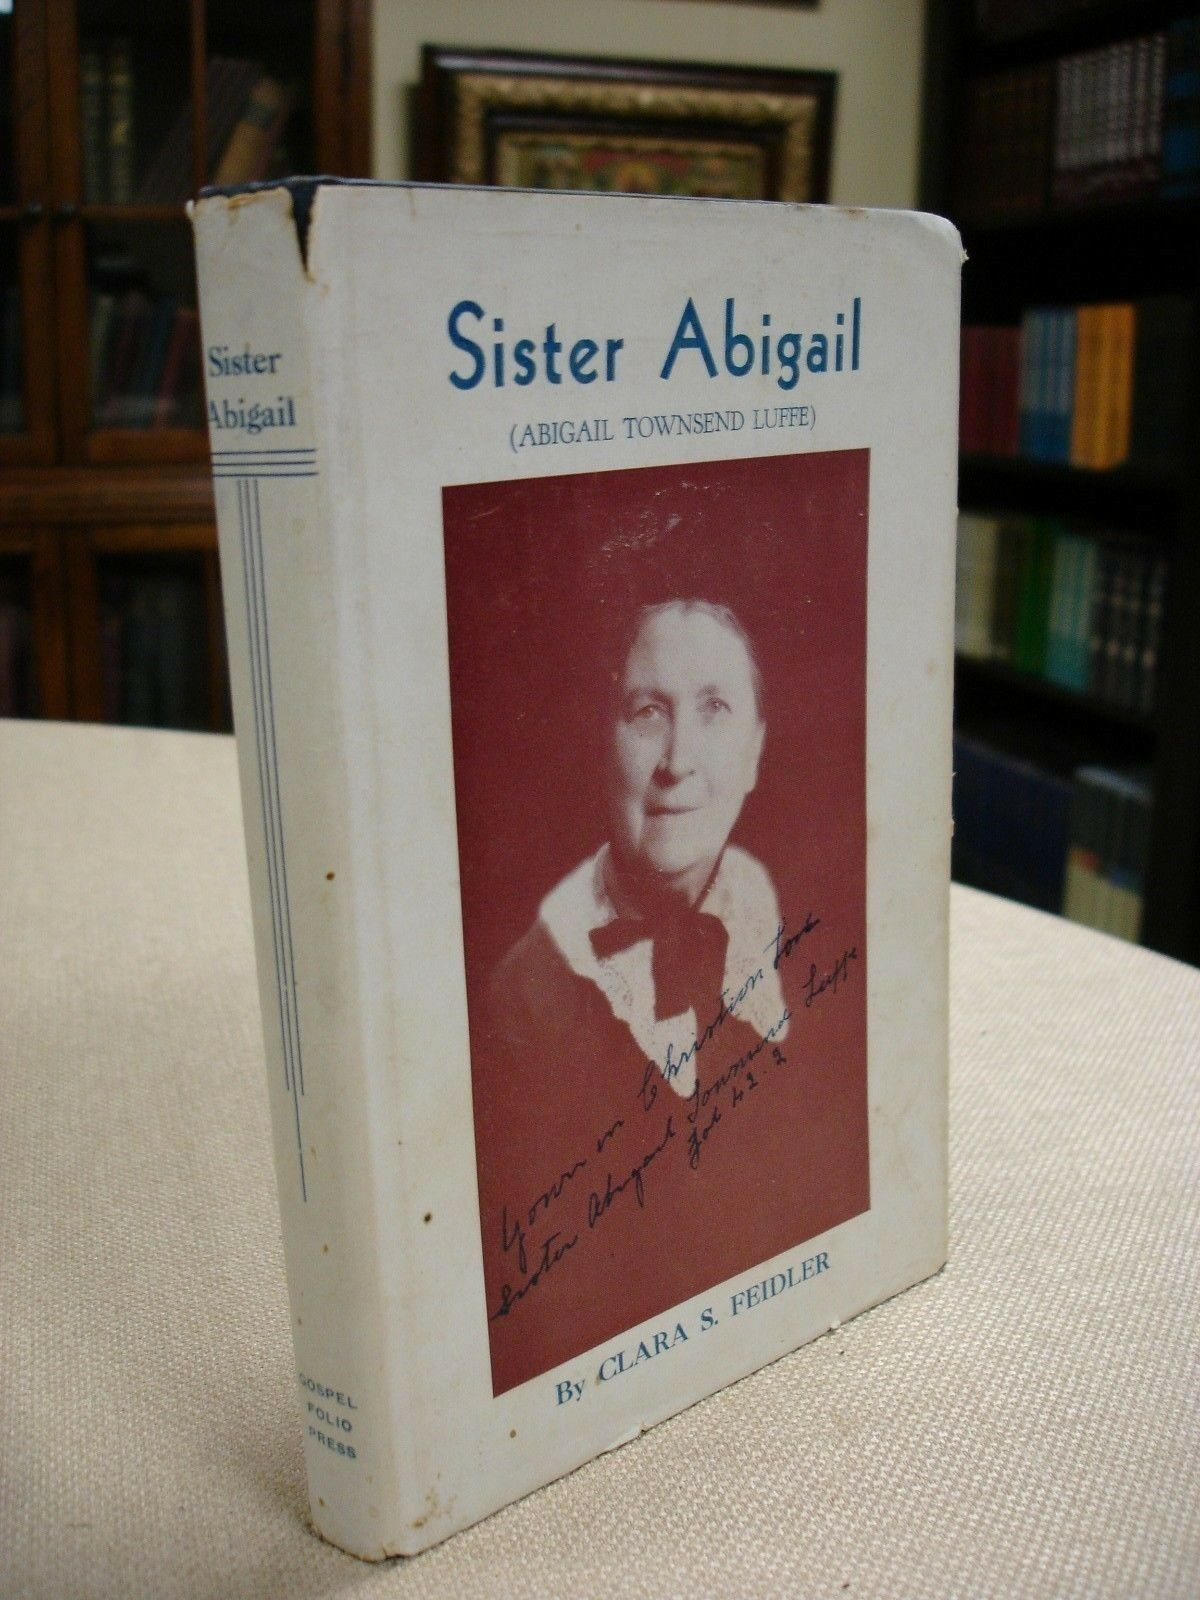 Sister Abigail signed by Abigail Townsend Luffe - 1937